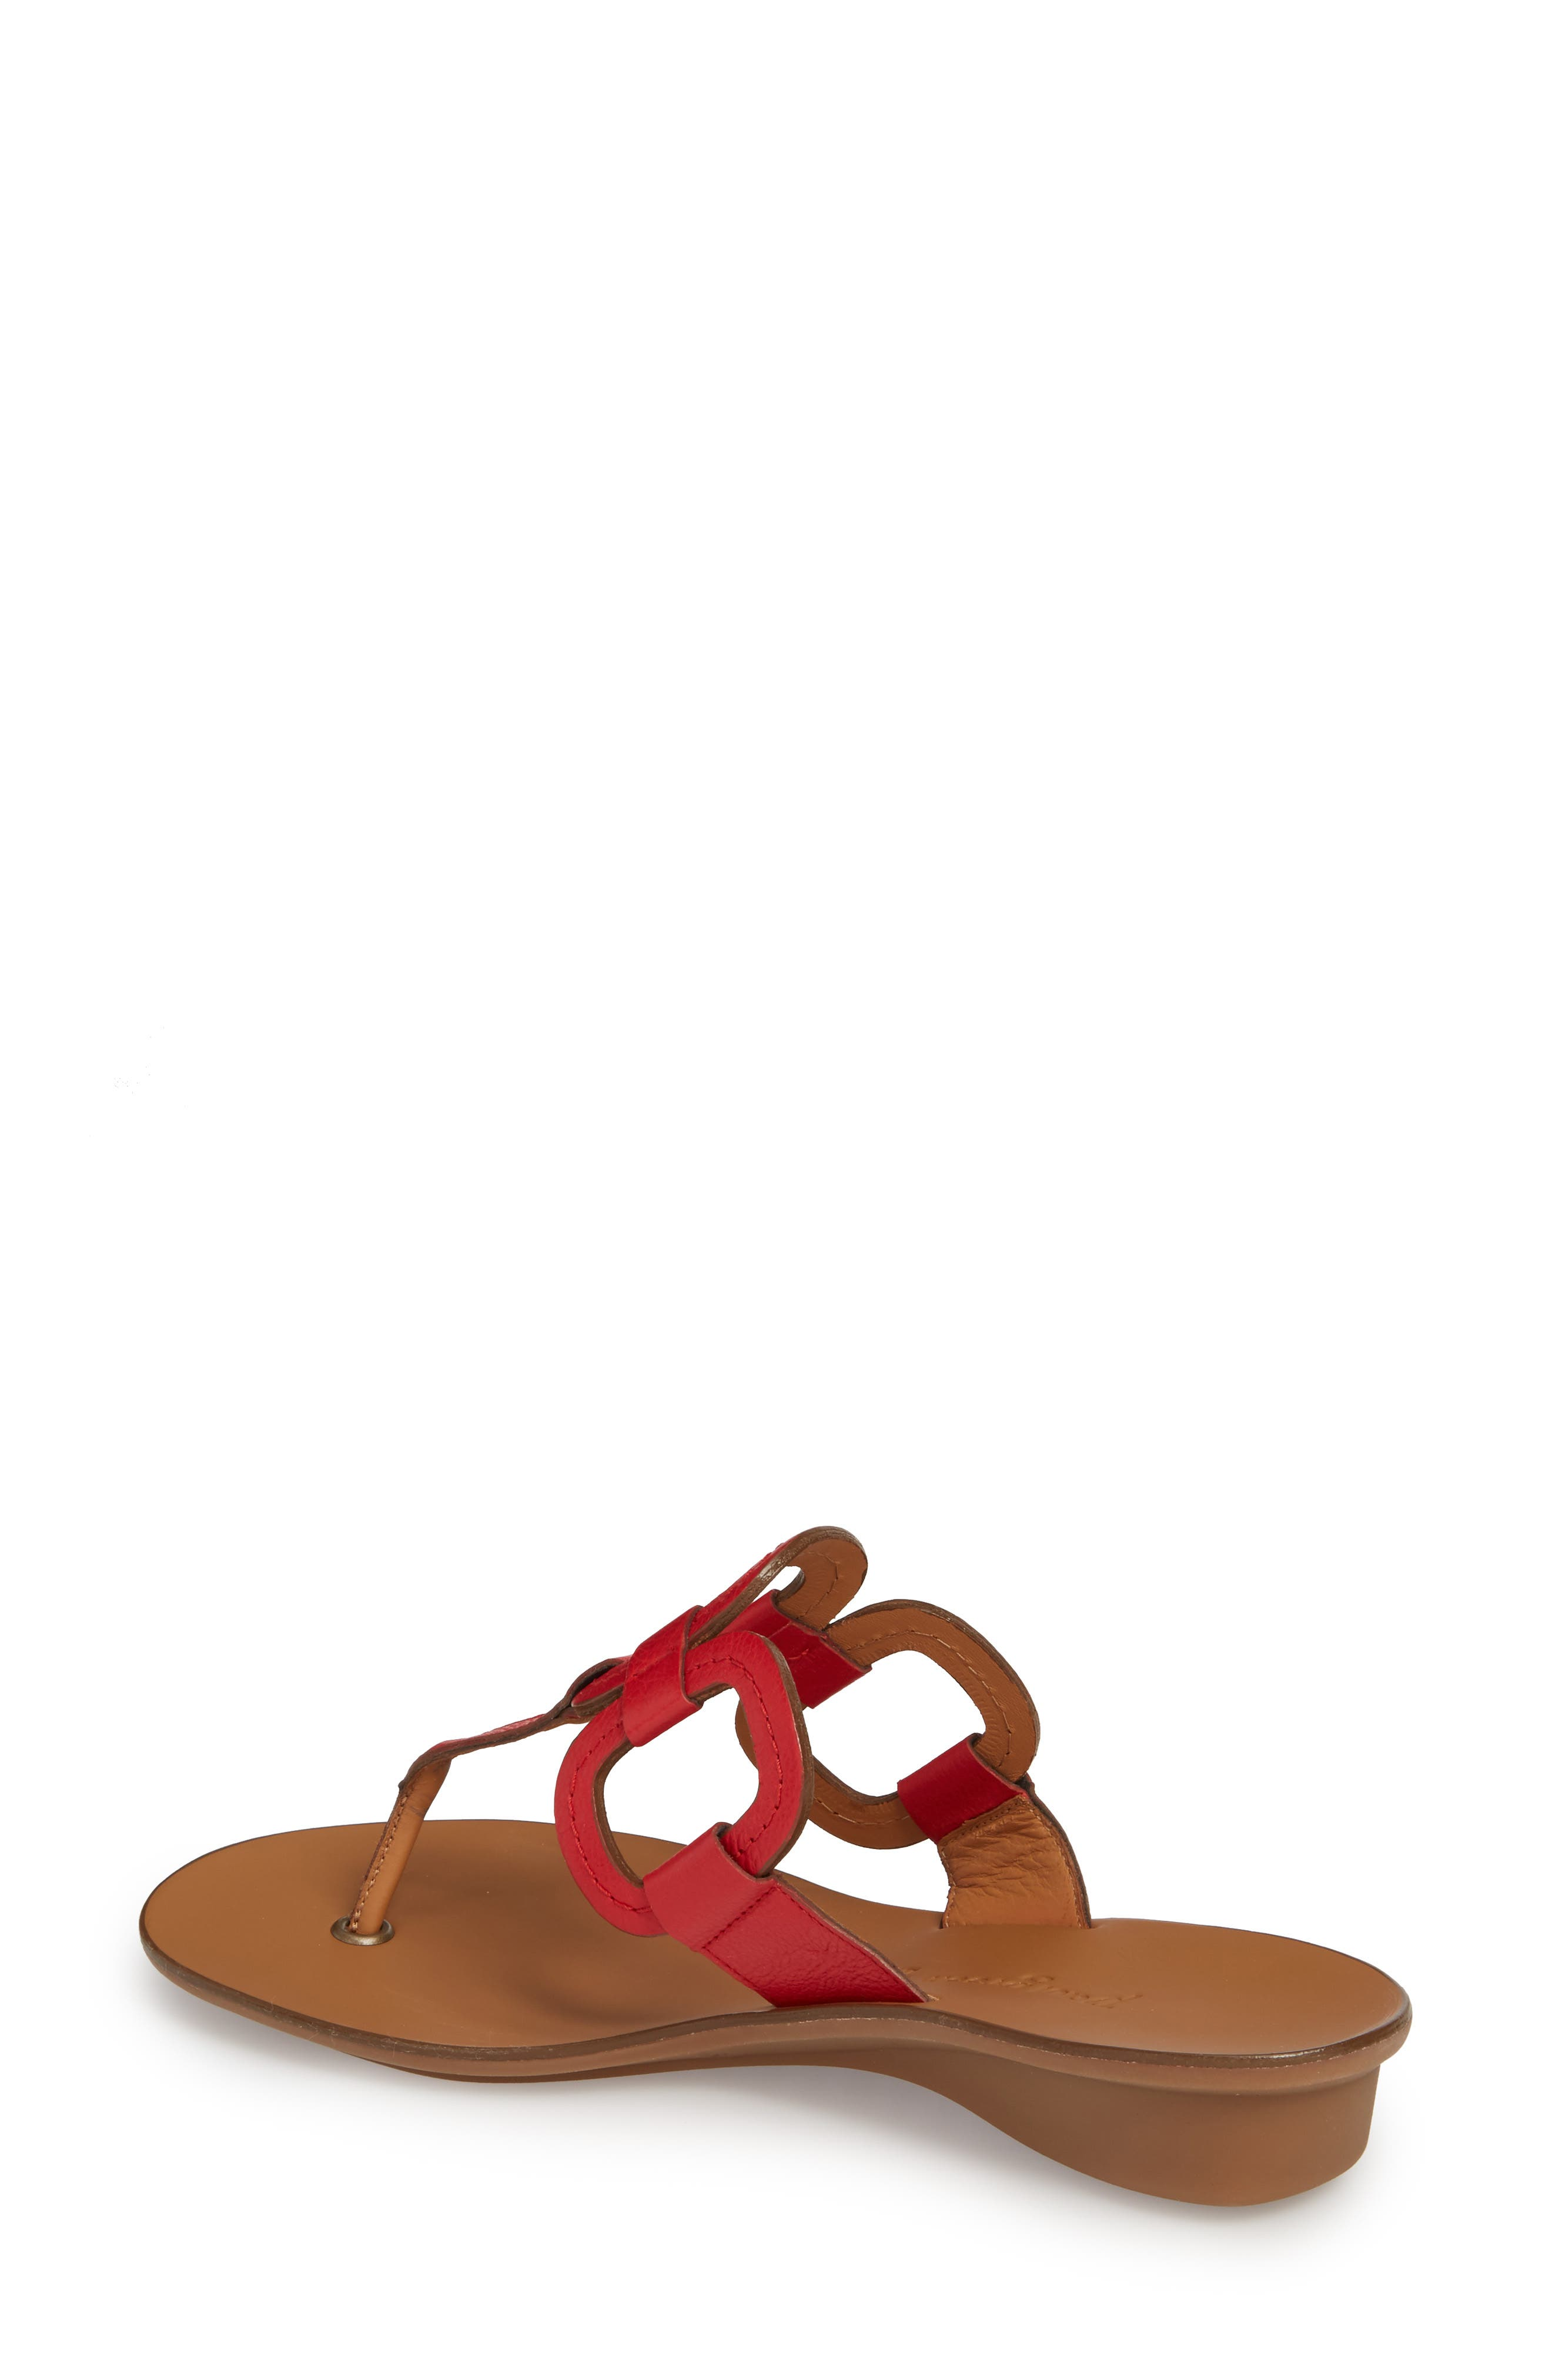 Lanai Flip-Flop,                             Alternate thumbnail 2, color,                             Red Leather